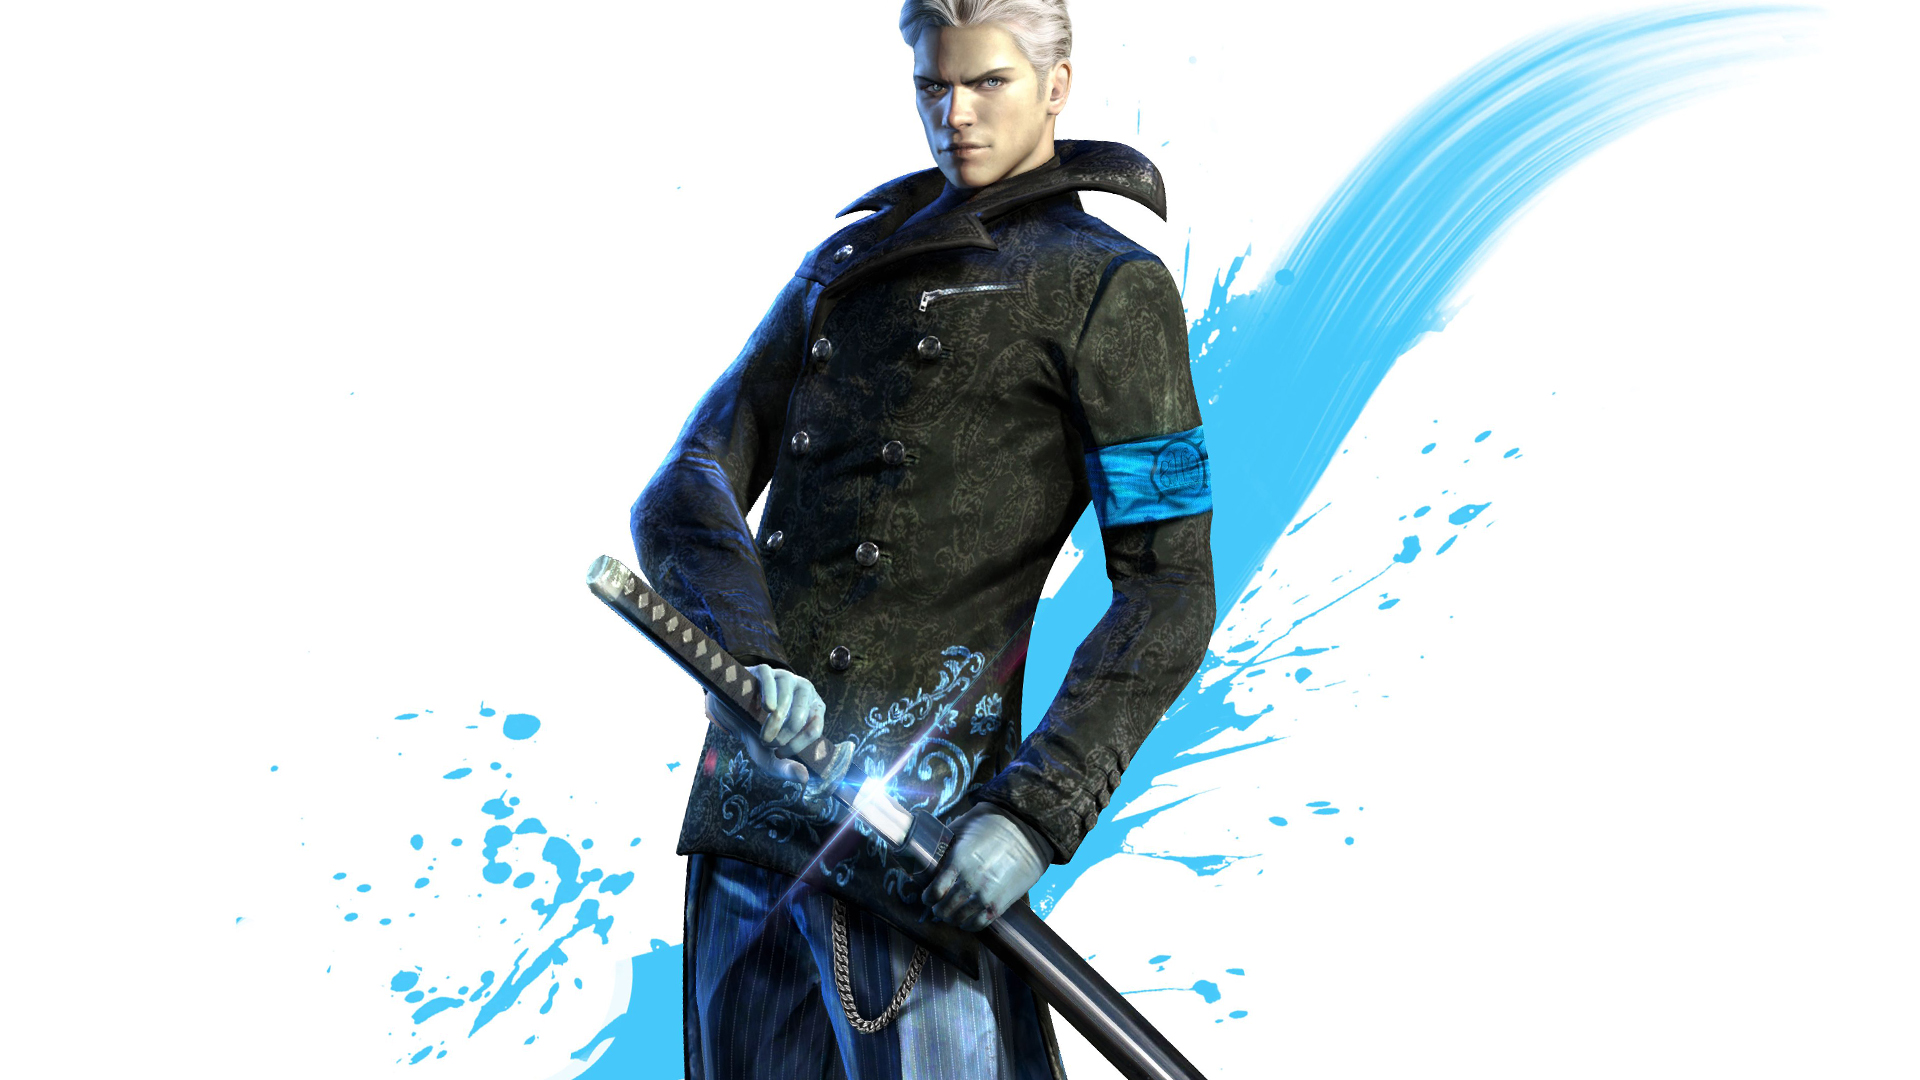 Devil May Cry Vergil Wallpaper - WallpaperSafari